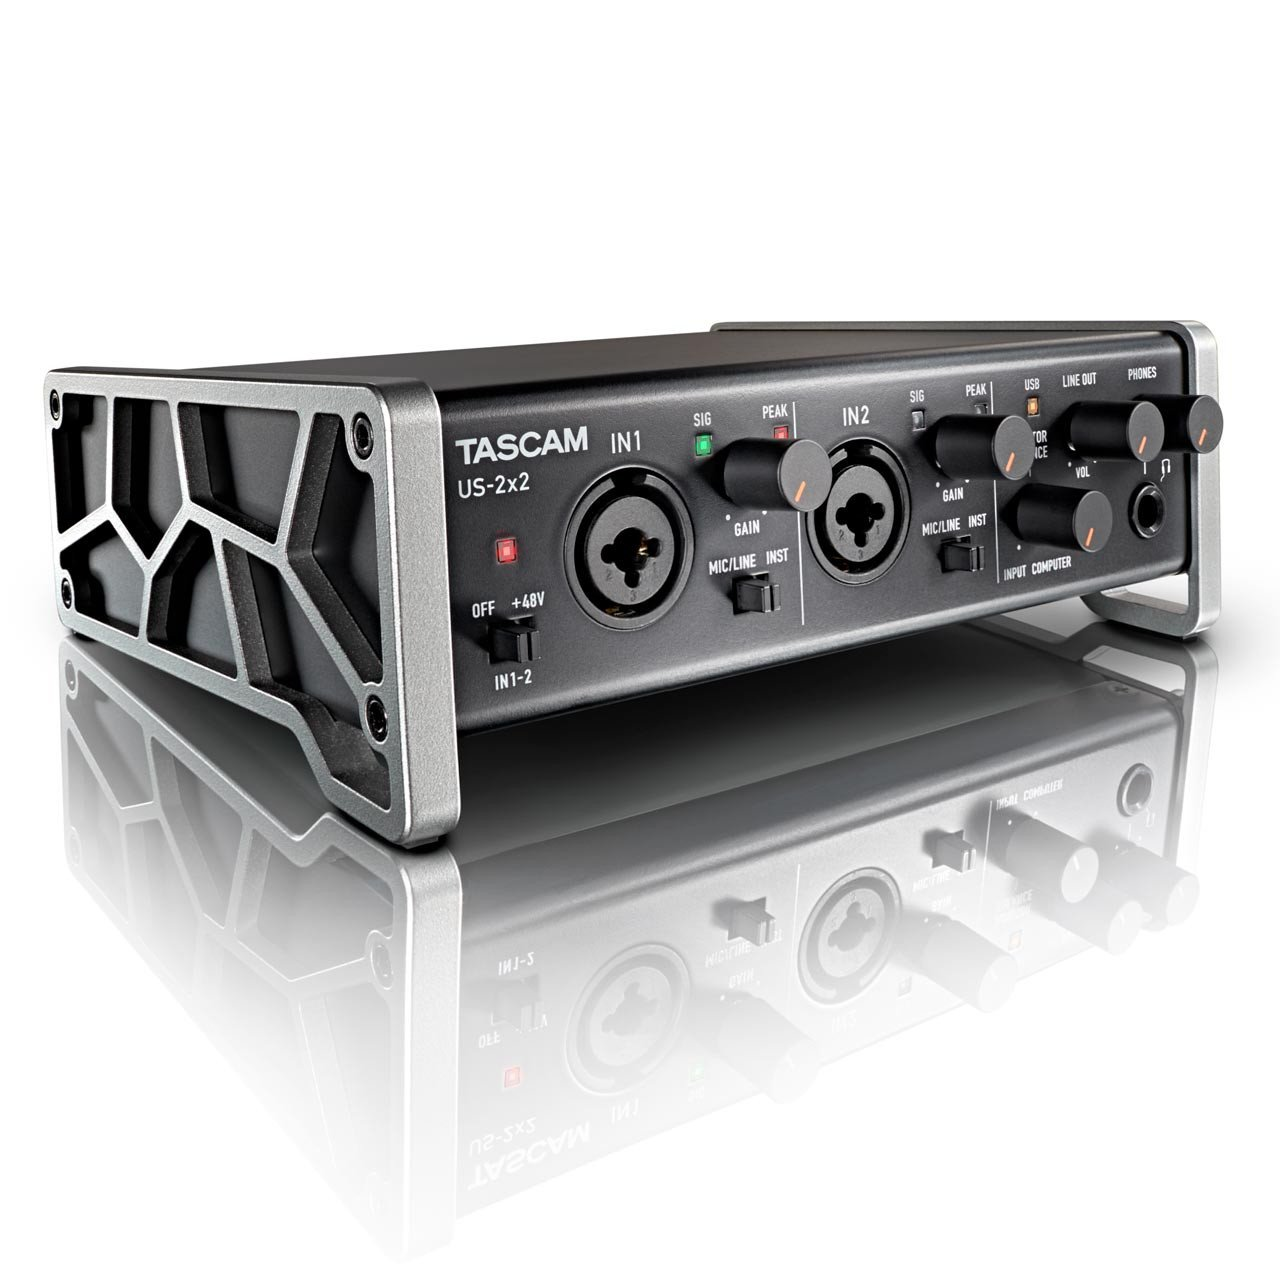 USB Audio Interfaces - TASCAM US-2x2 USB Audio/MIDI Interface With HDDA Mic Preamps And IOS Compatibility